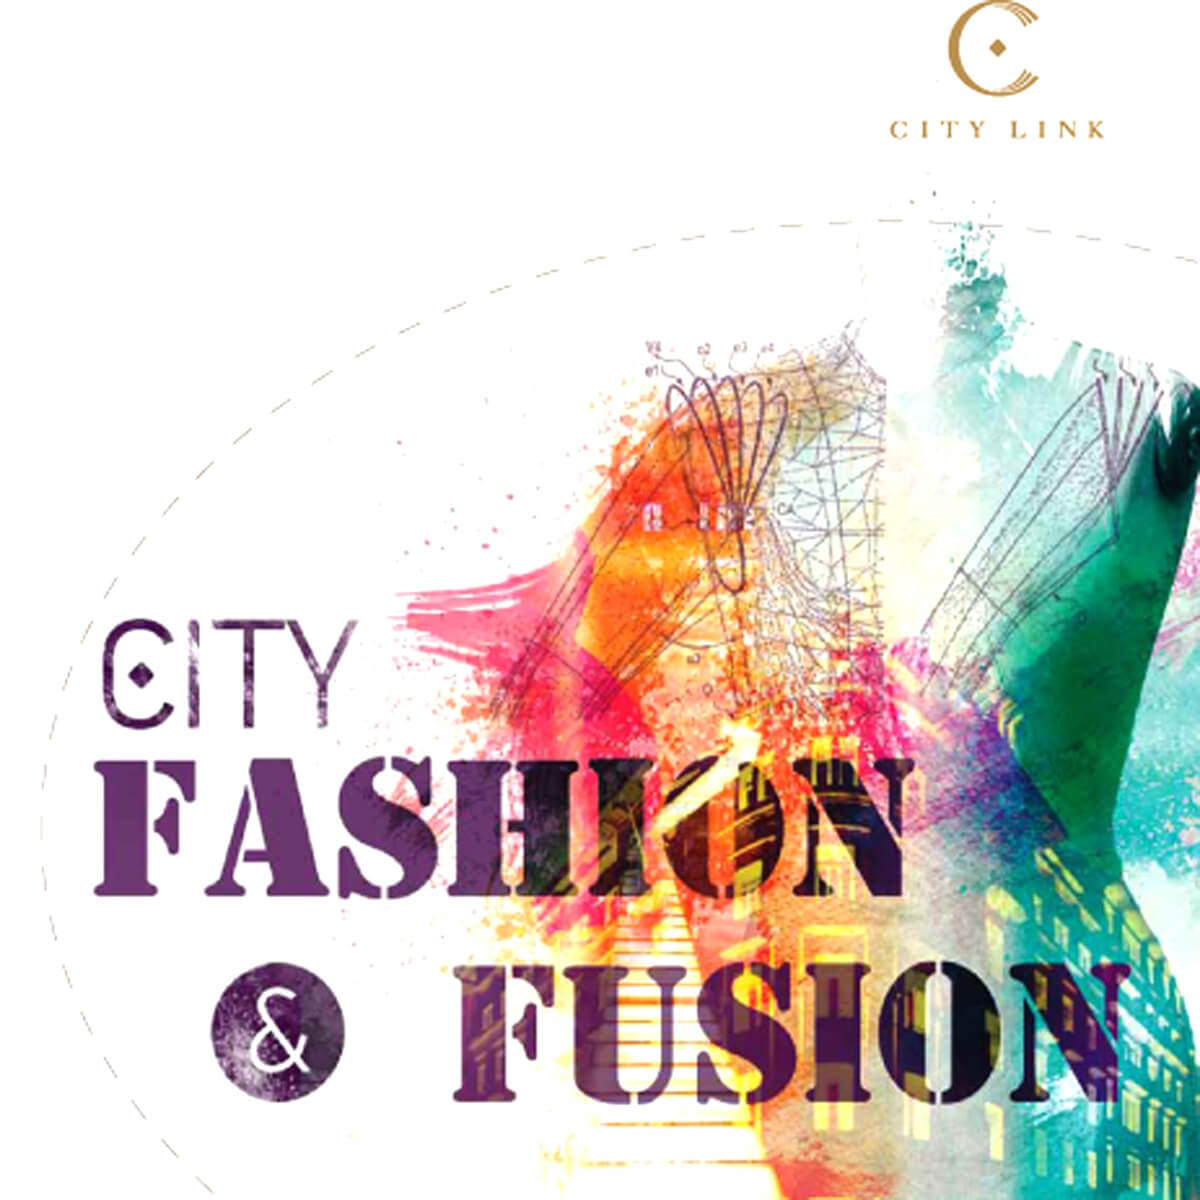 CITY FASHION & FUSION